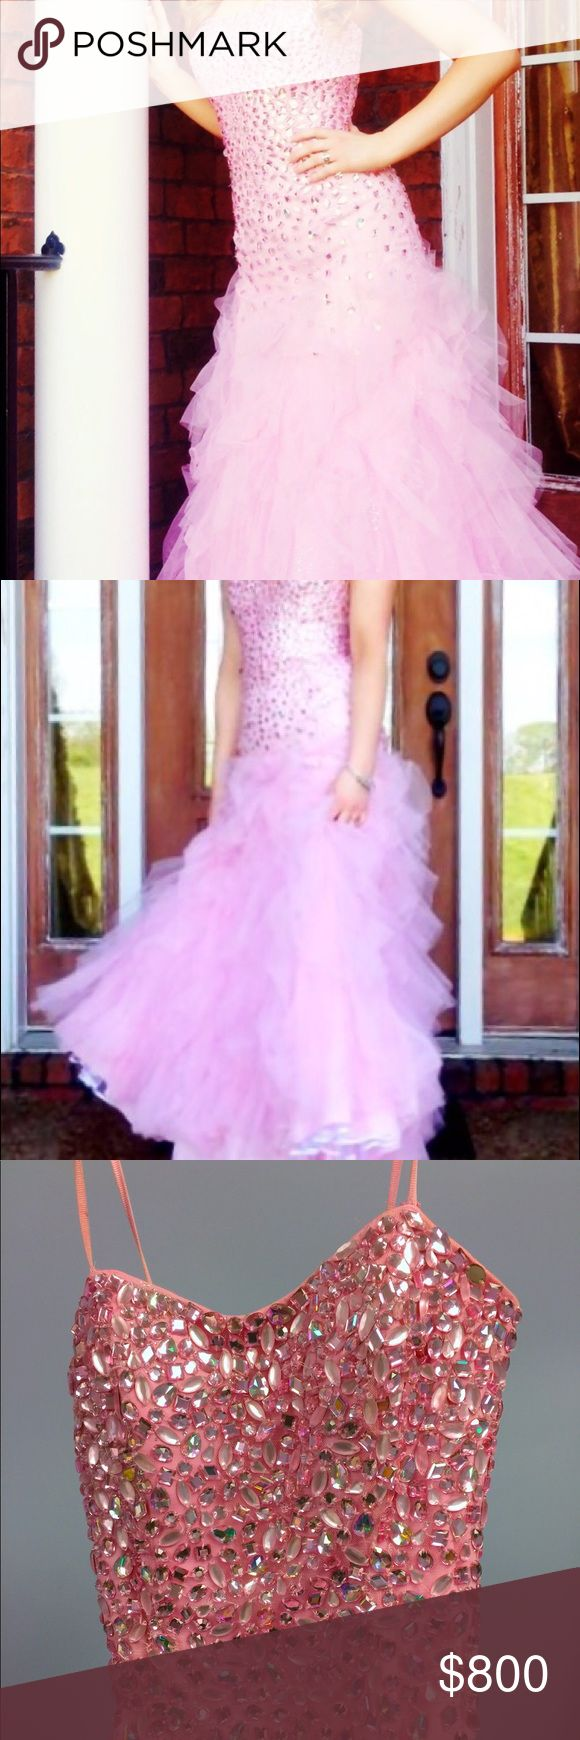 Sherri Hill prom/formal dress This dress is perfect for the girl who wants to feel like a princess on her special night! It's pink with a fitted bodice and full skirt. The bodice is embellished with mirrored beading. The skirt has crystals dusted throughout. It really sparkles! The dress has spaghetti straps. It was a size 8 but was altered so it's more like a size 6 now. With alterations, this dress cost more than $1,000. There are some spray tan marks (pictured) on the inside of bodice…